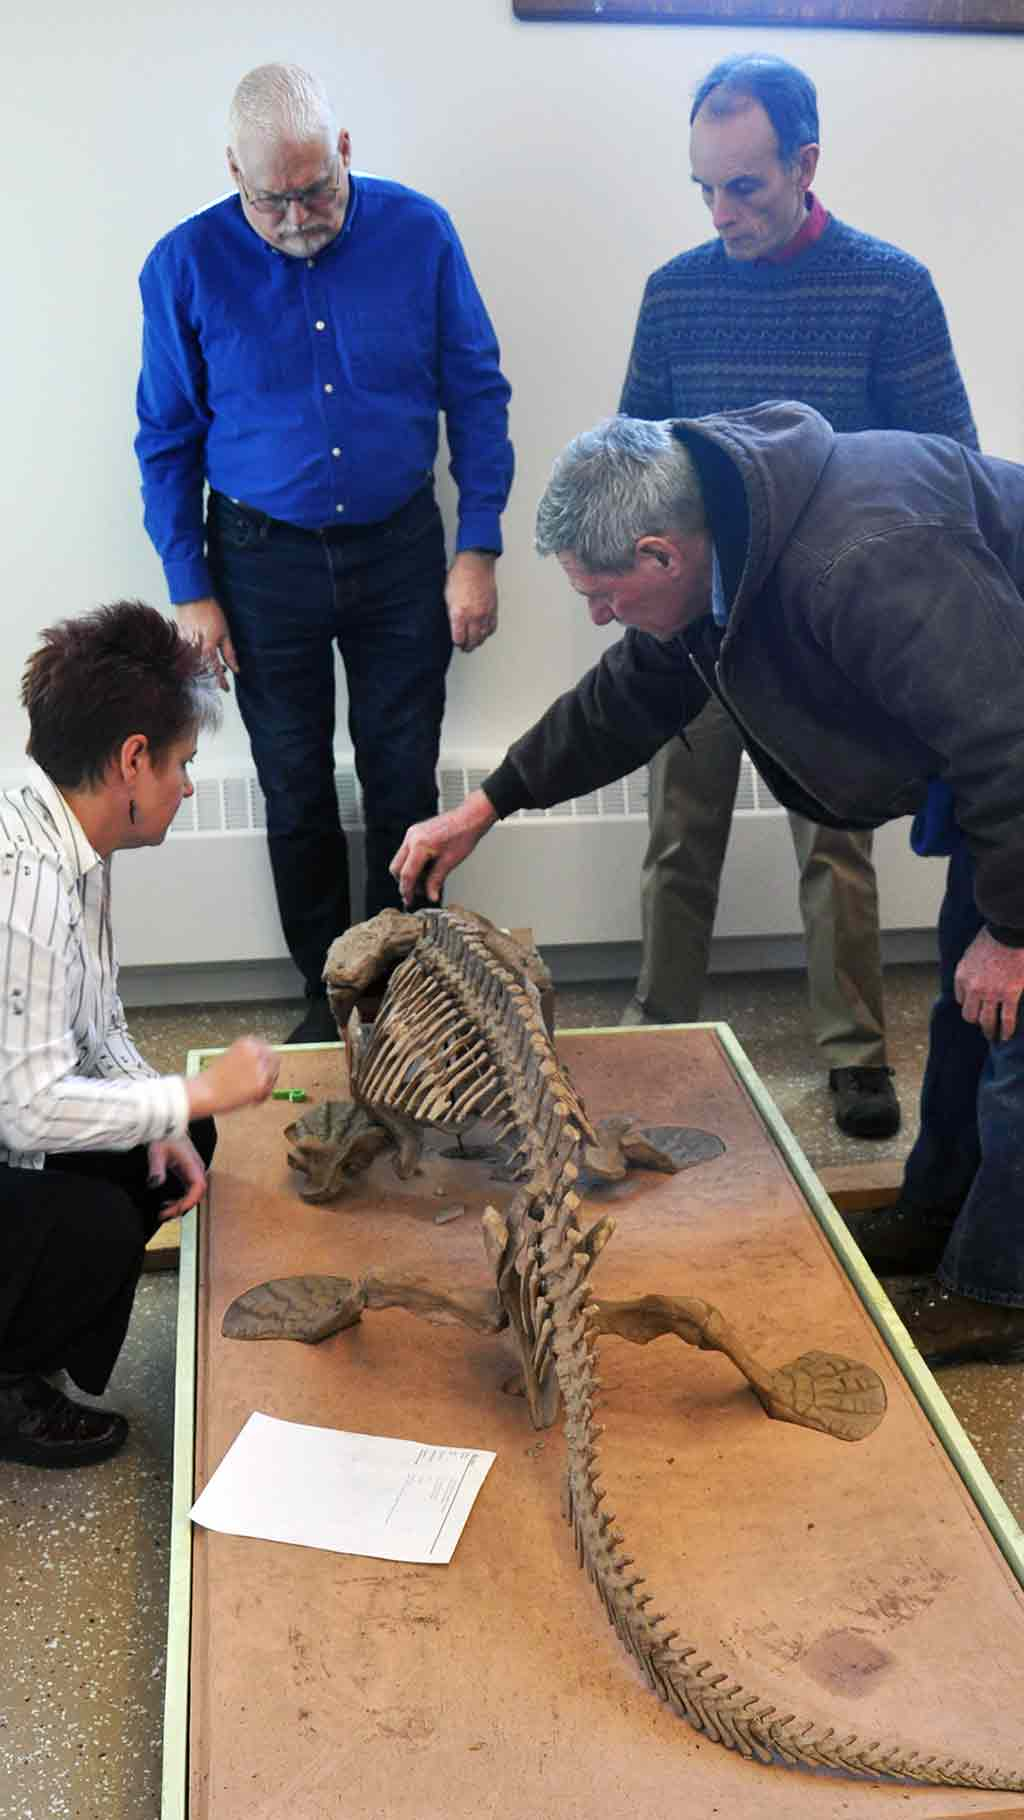 woman and man inspect head of cast of large amphibian